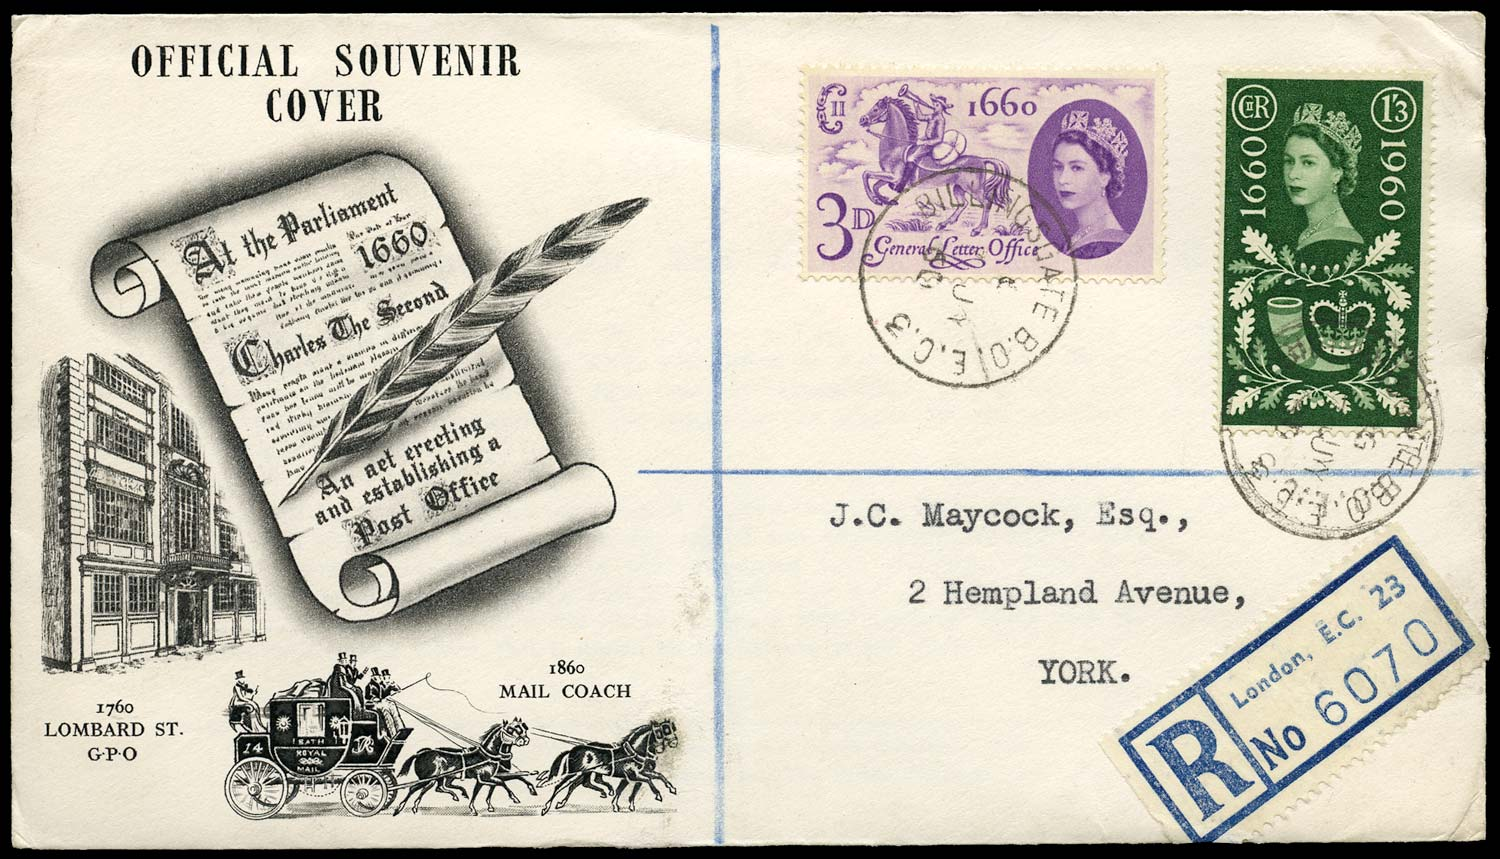 GB 1961  SG629/30 Cover - First day cover